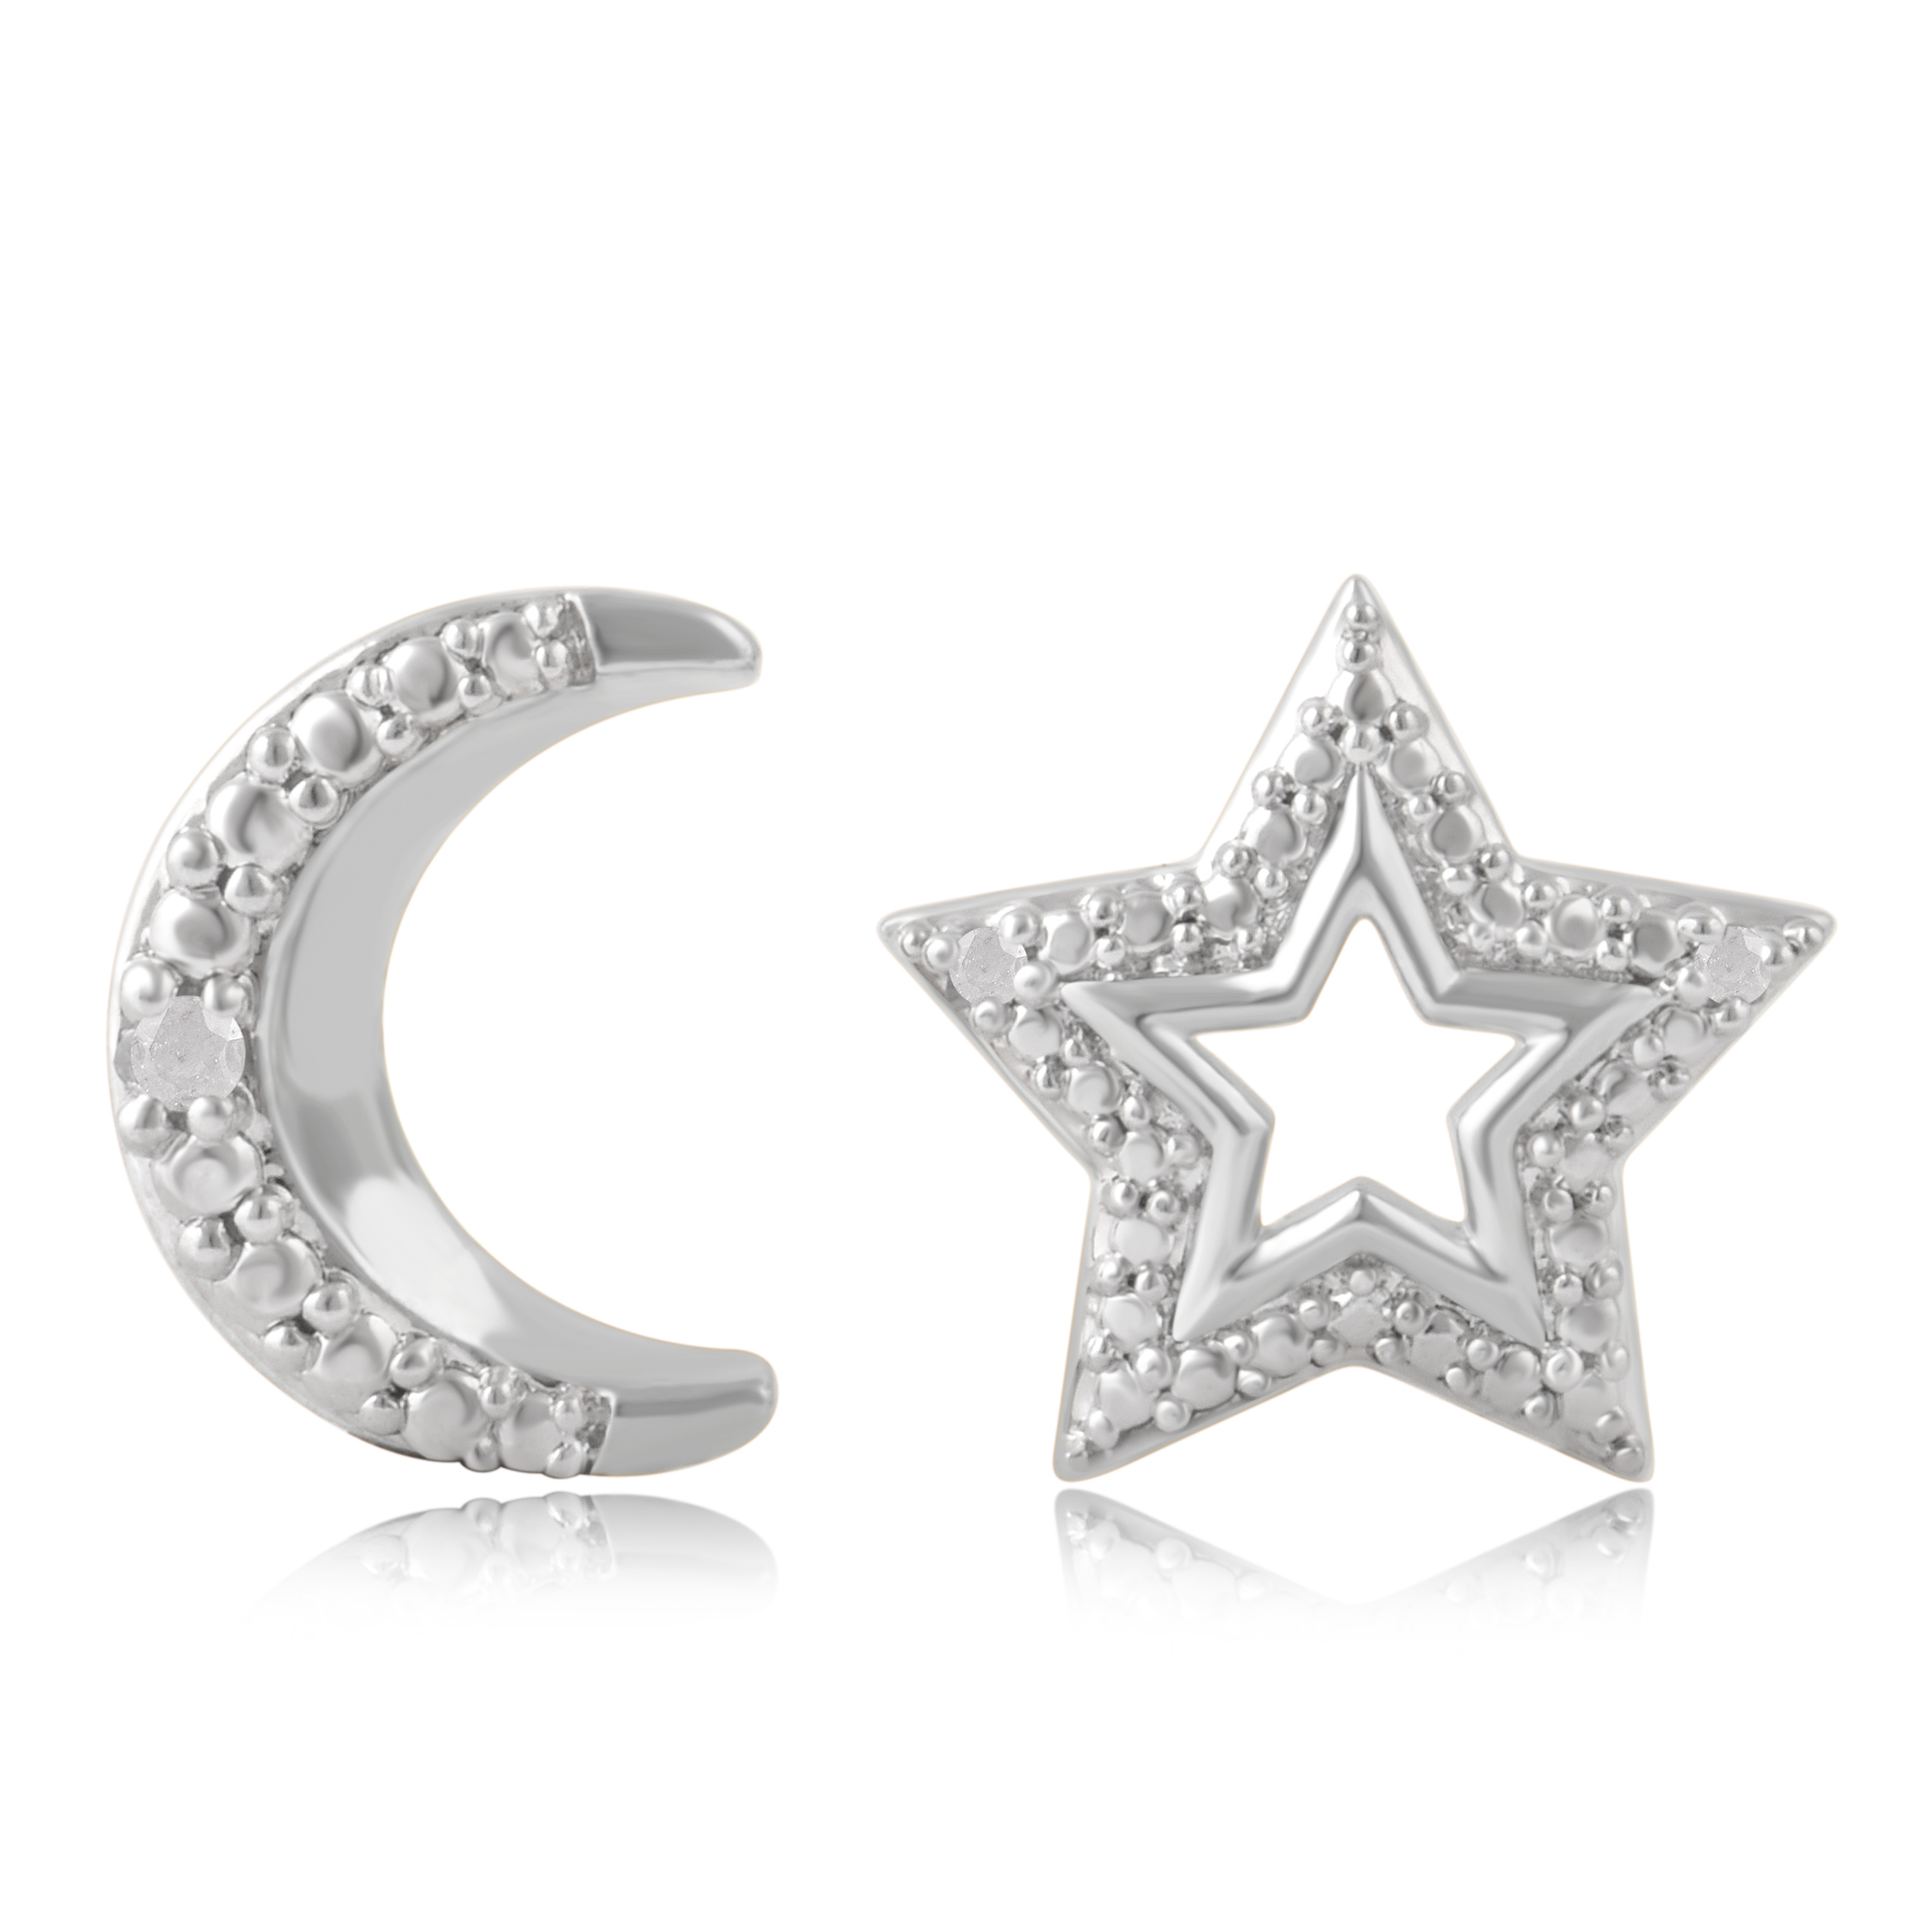 Diamond Accent Moon and Star Earrings - 3 Colors